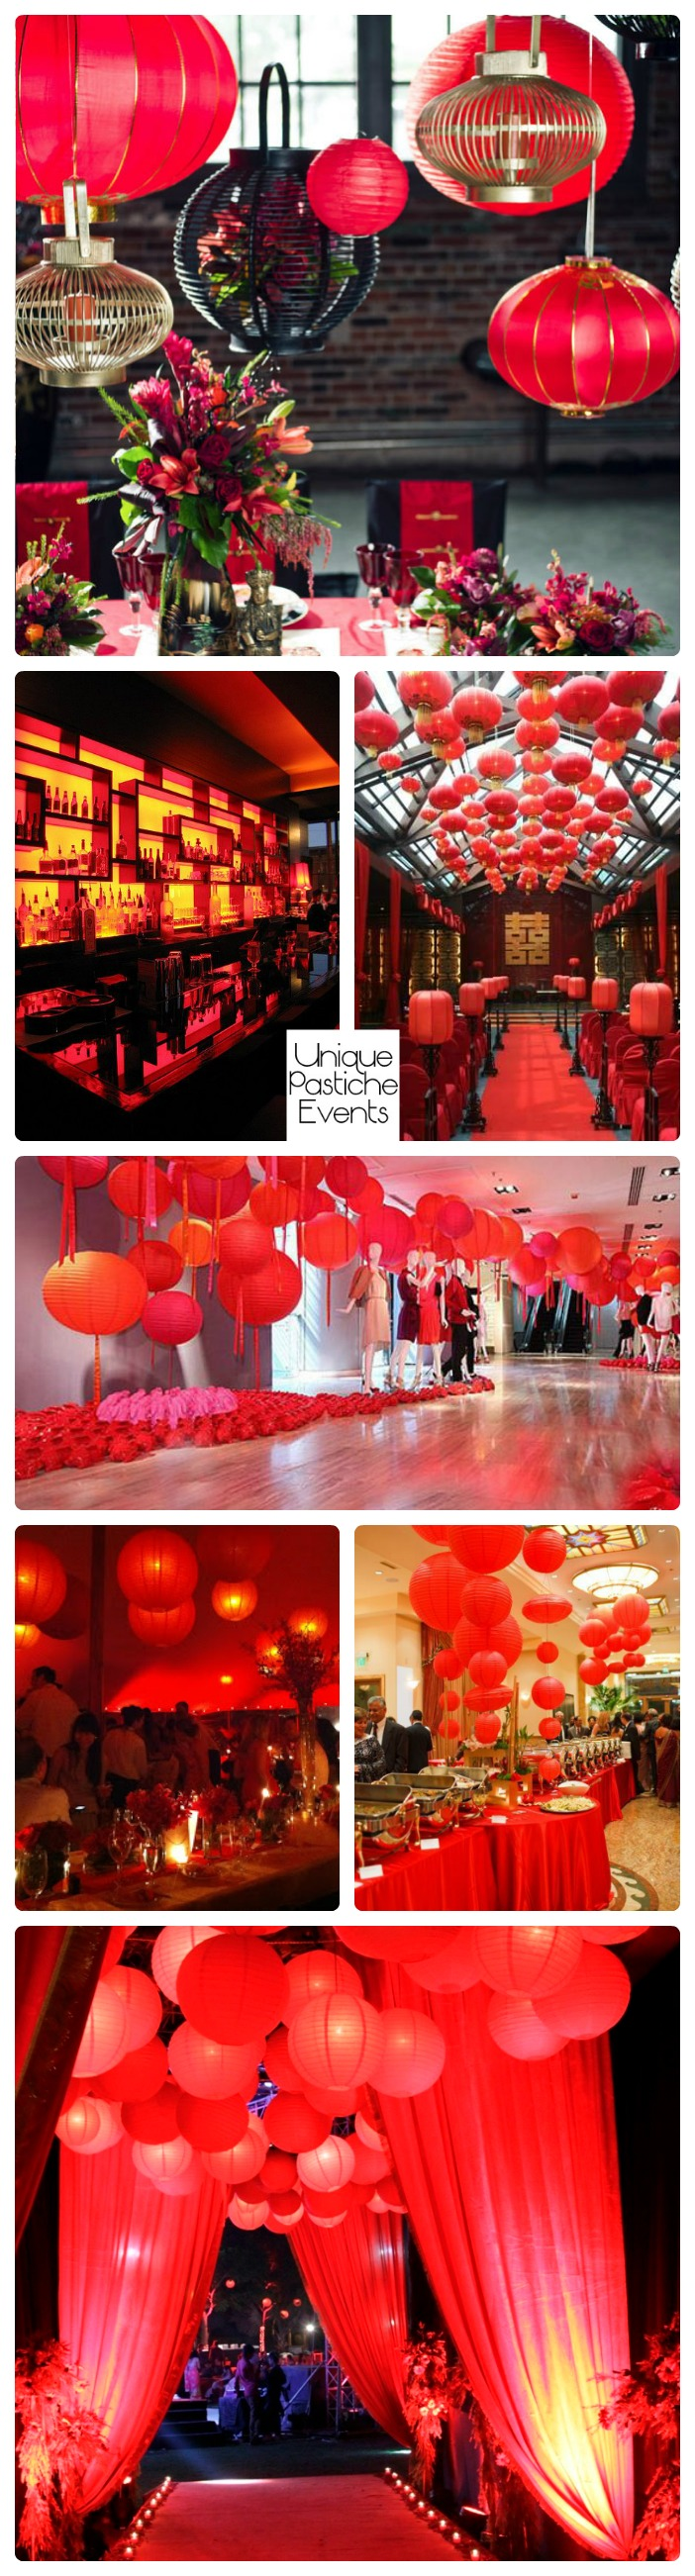 Asian Infused Wedding in Red with Paper Lanterns